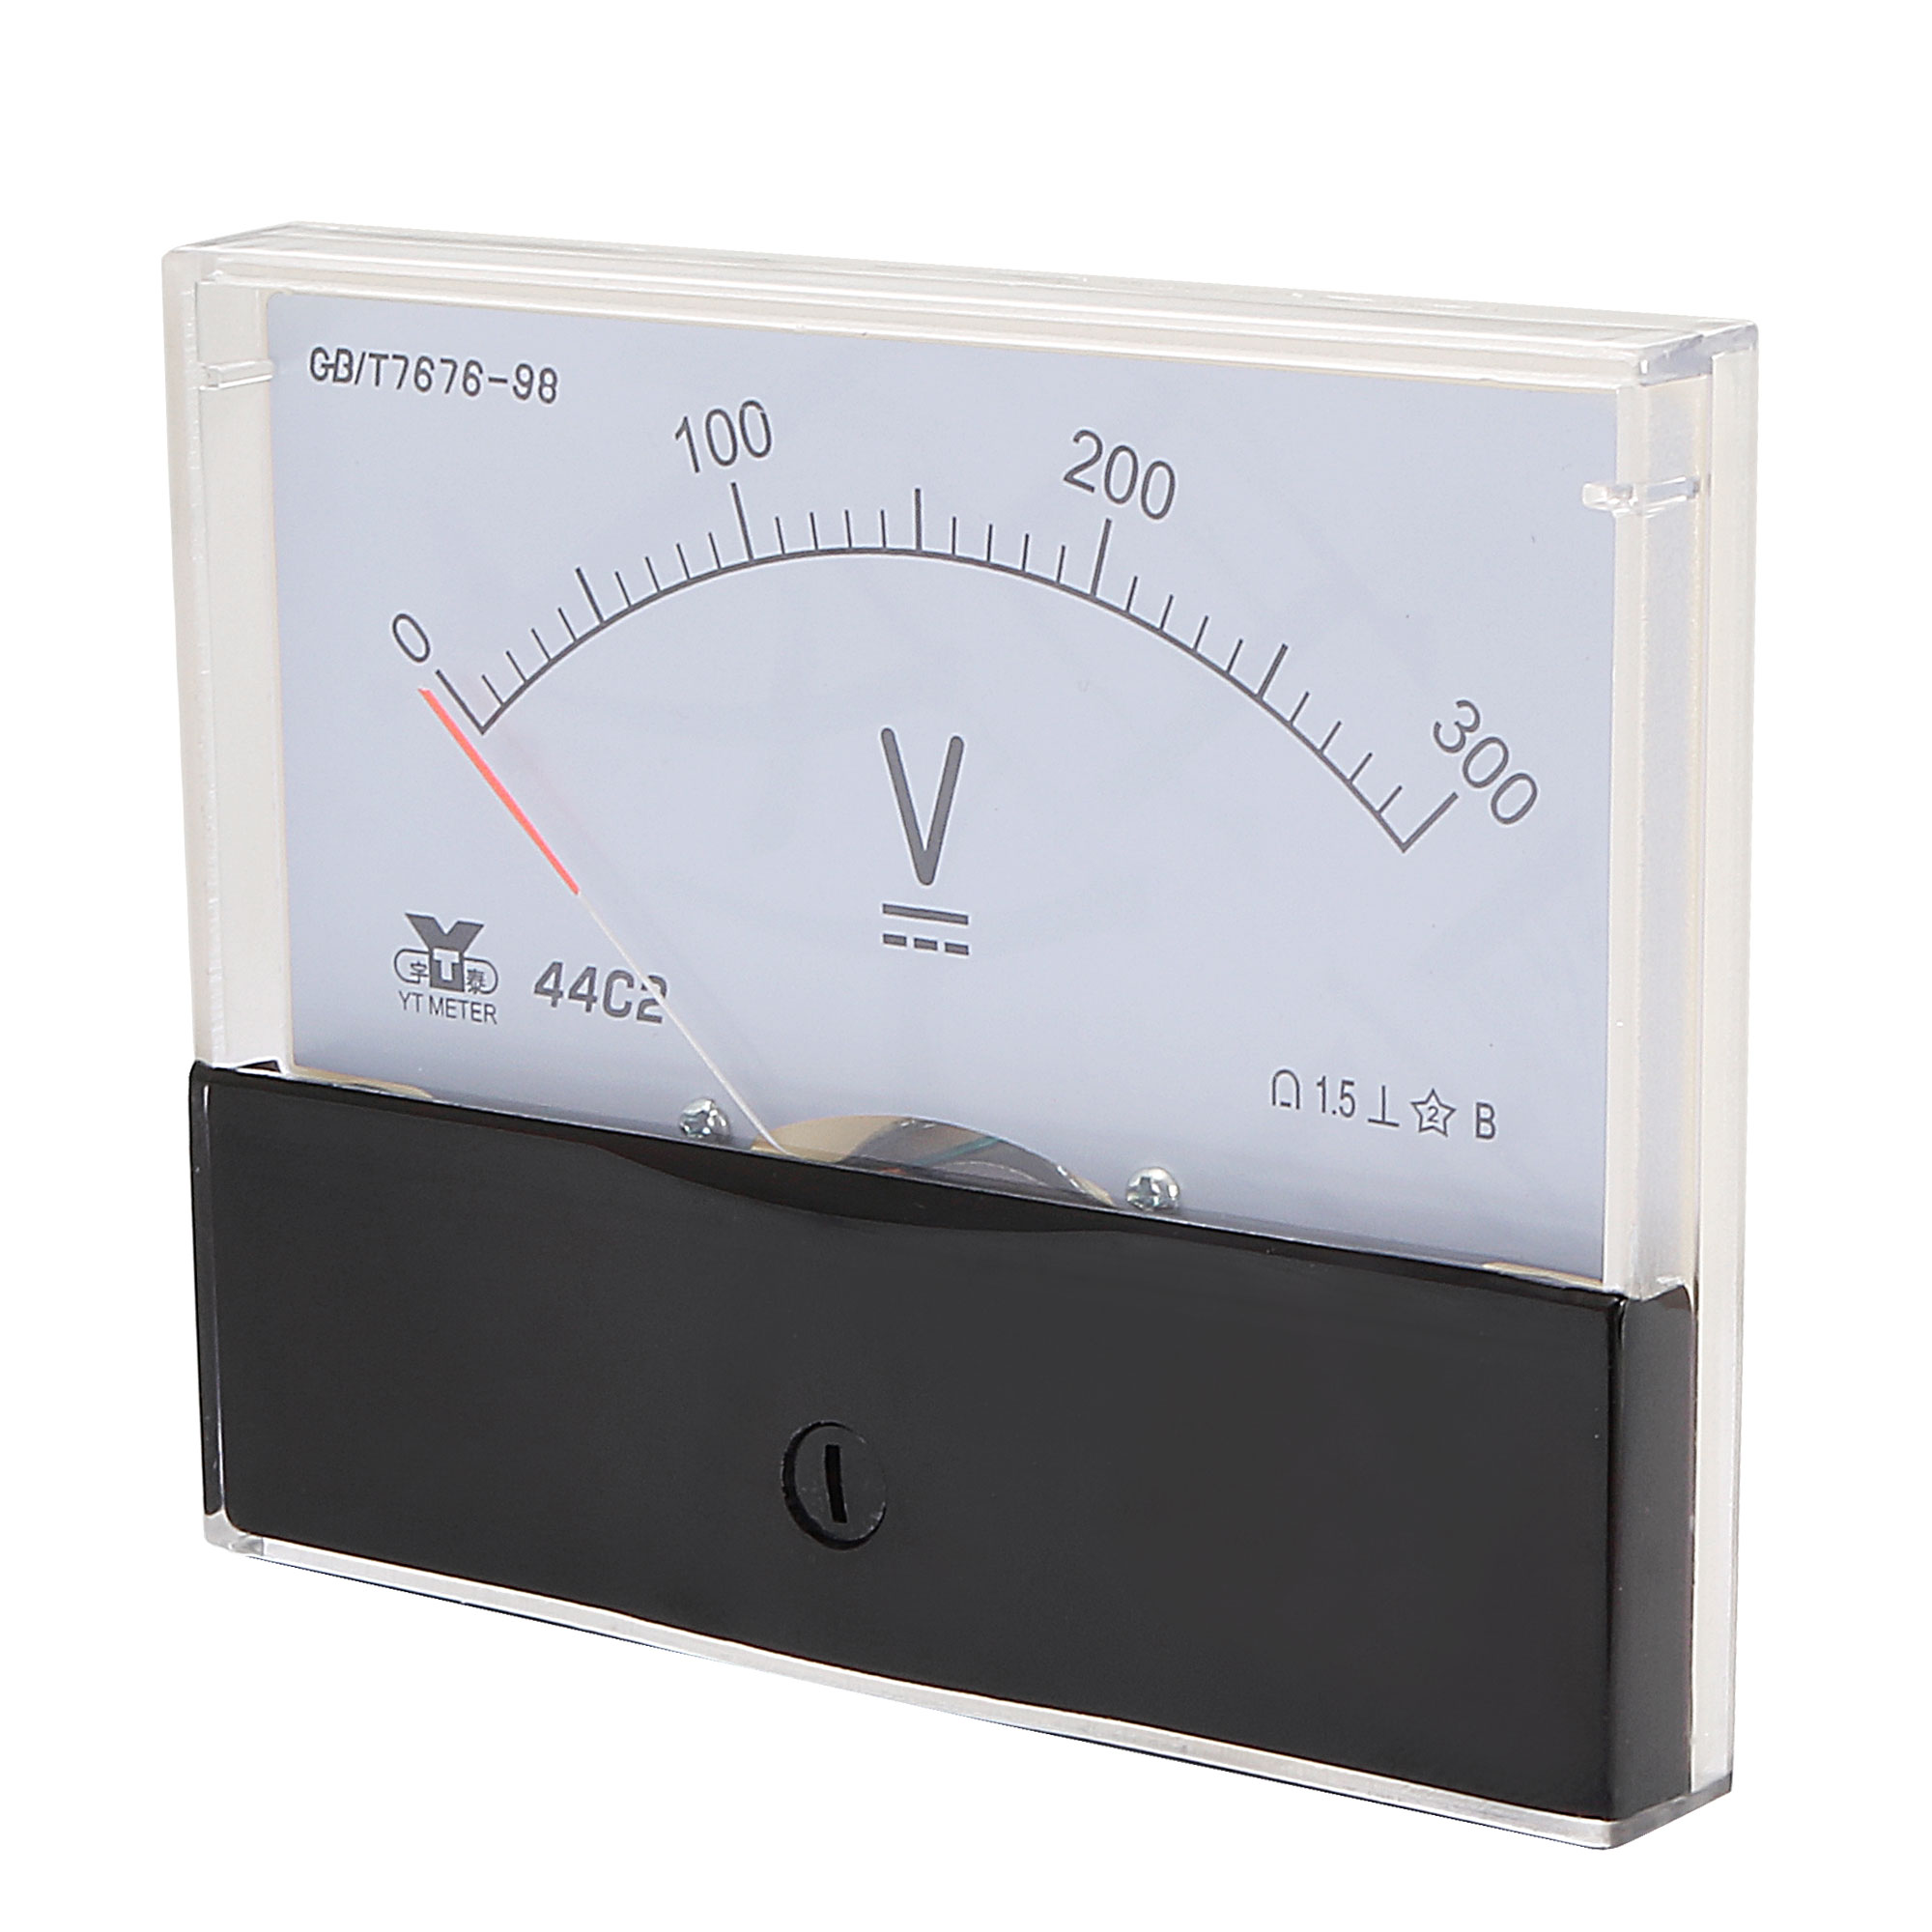 Rectangle Measurement Tool Analog Panel Voltmeter Volt Meter DC 0 - 300V Measuring Range 44C2